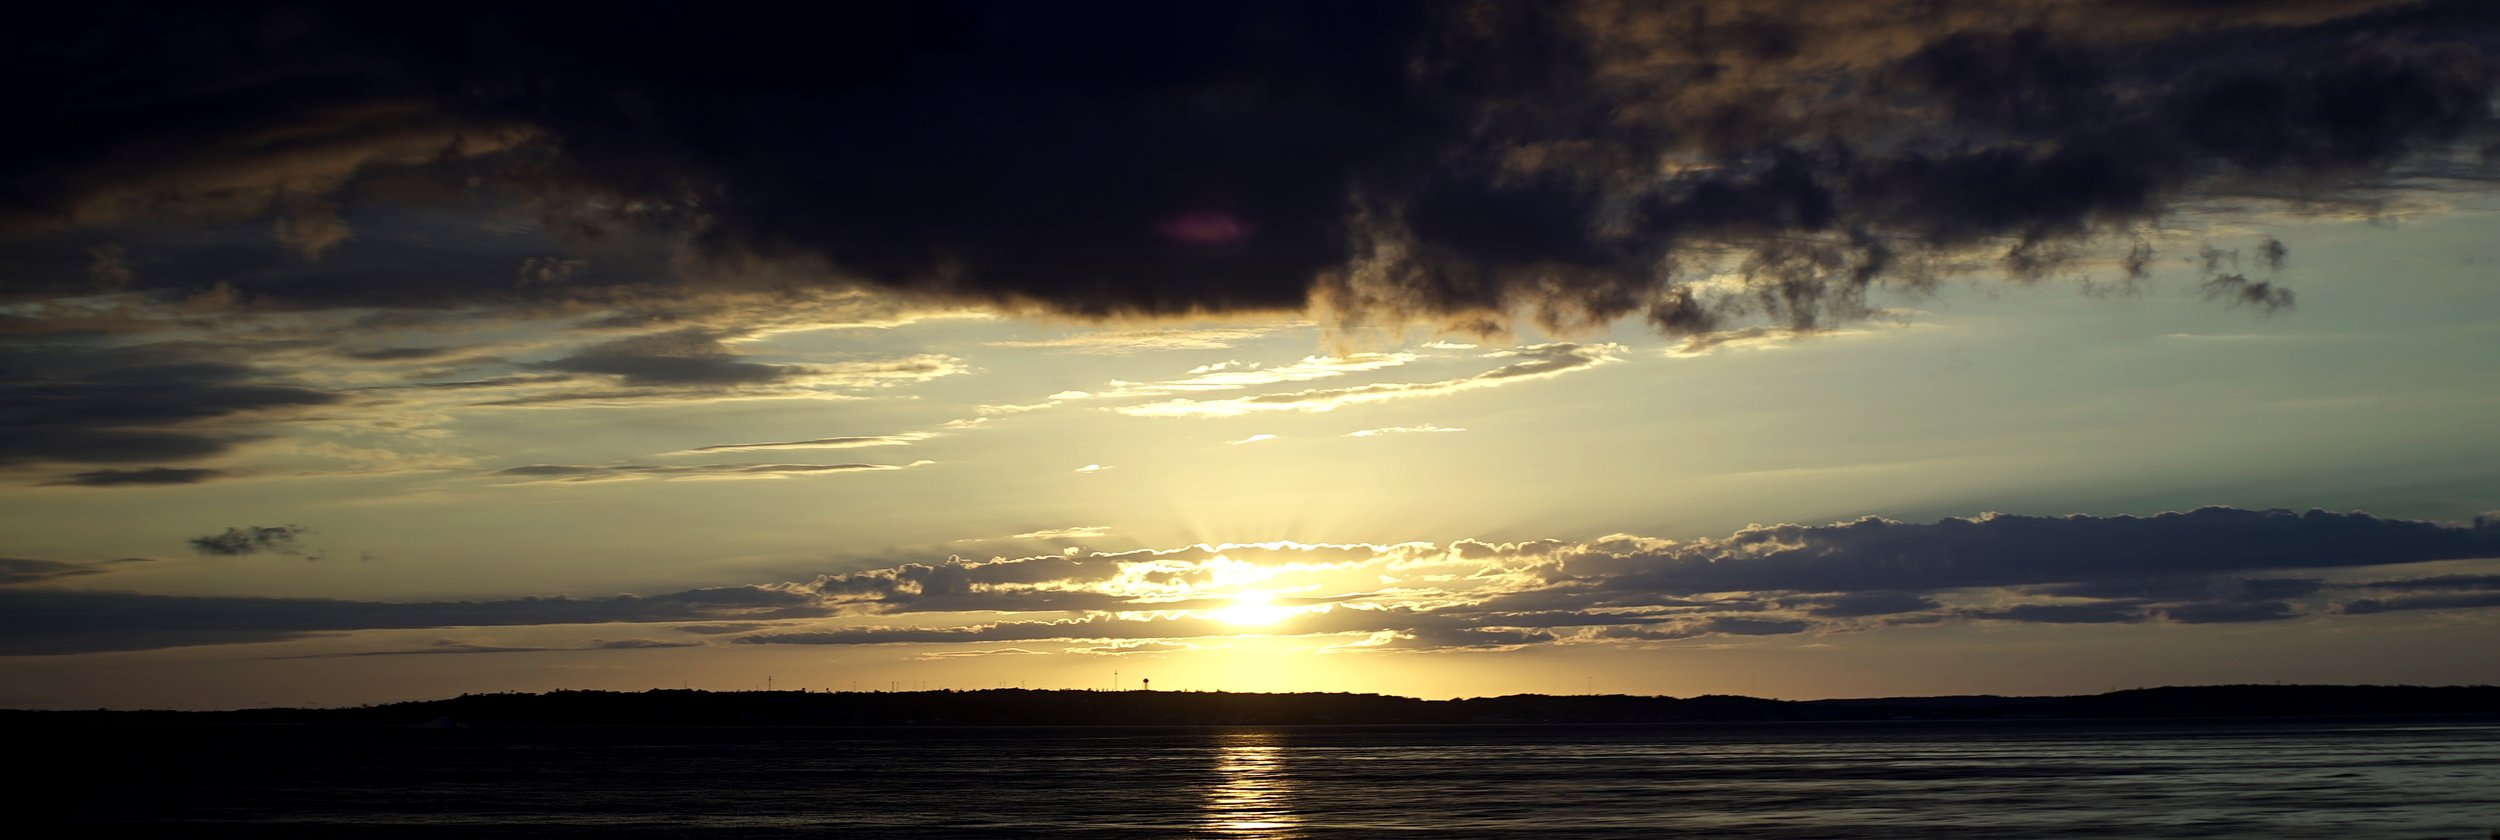 Lomo 100mm anamorphic lens | Sunset over St.Ignace, Upper-Penninsula, MI. Photo by: Keith Nickoson